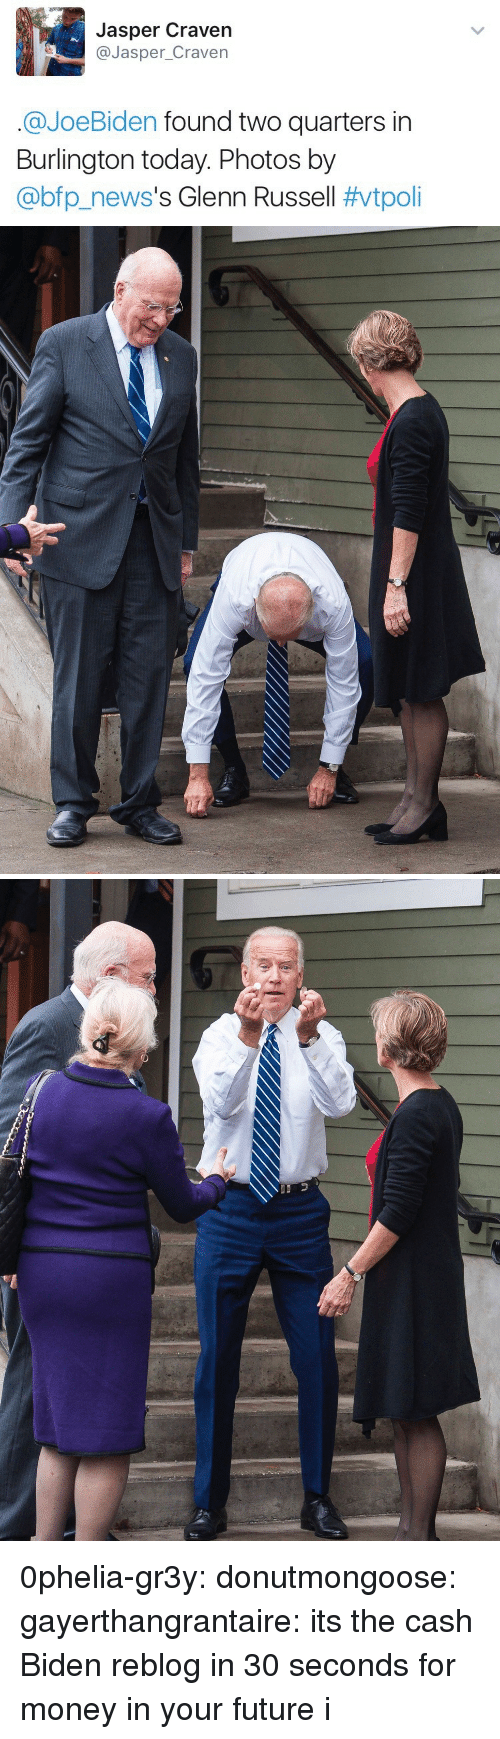 Future, Money, and Tumblr: Jasper Craven  @Jasper_Craven  @JoeBiden found two quarters in  Burlington today. Photos by  @bp.news's Glenn Russell 0phelia-gr3y:  donutmongoose:  gayerthangrantaire: its the cash Biden reblog in 30 seconds for money in your future   i